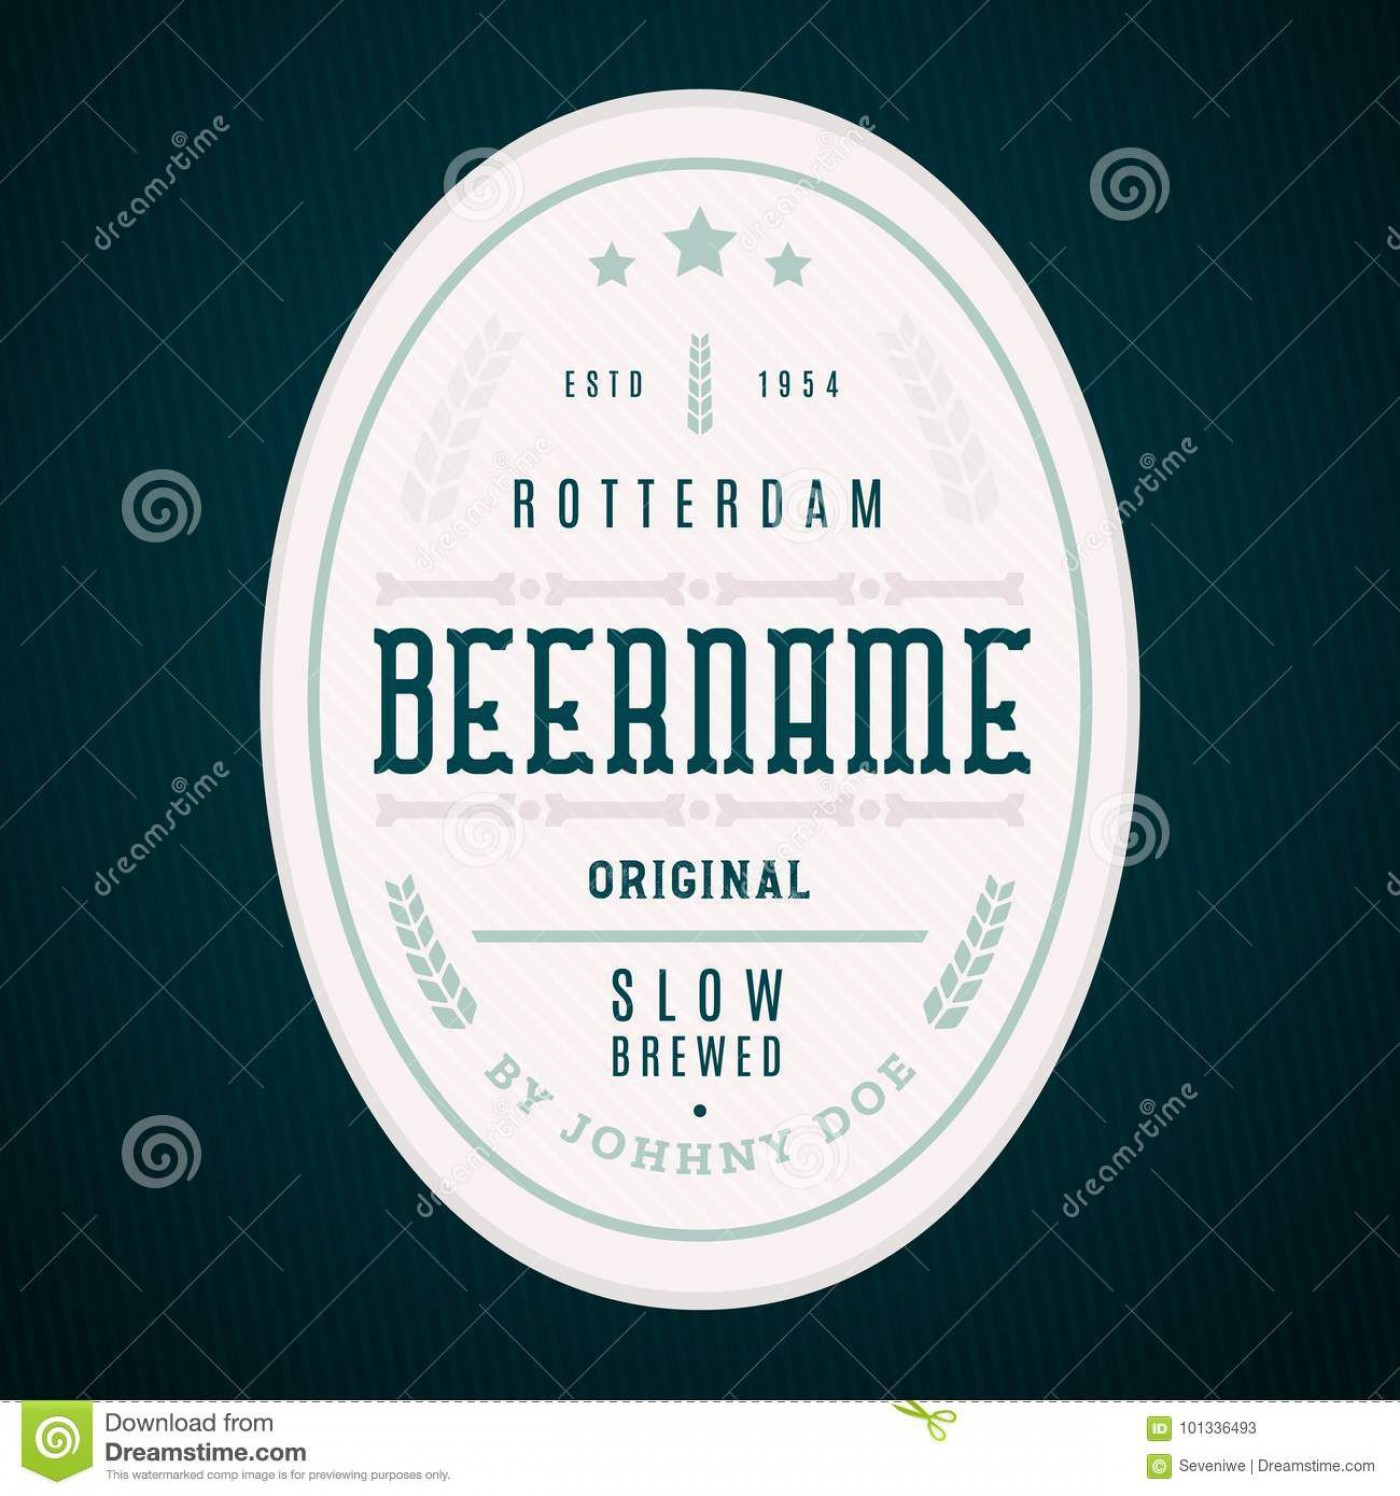 004 Marvelou Beer Label Design Template Highest Quality  Free1400